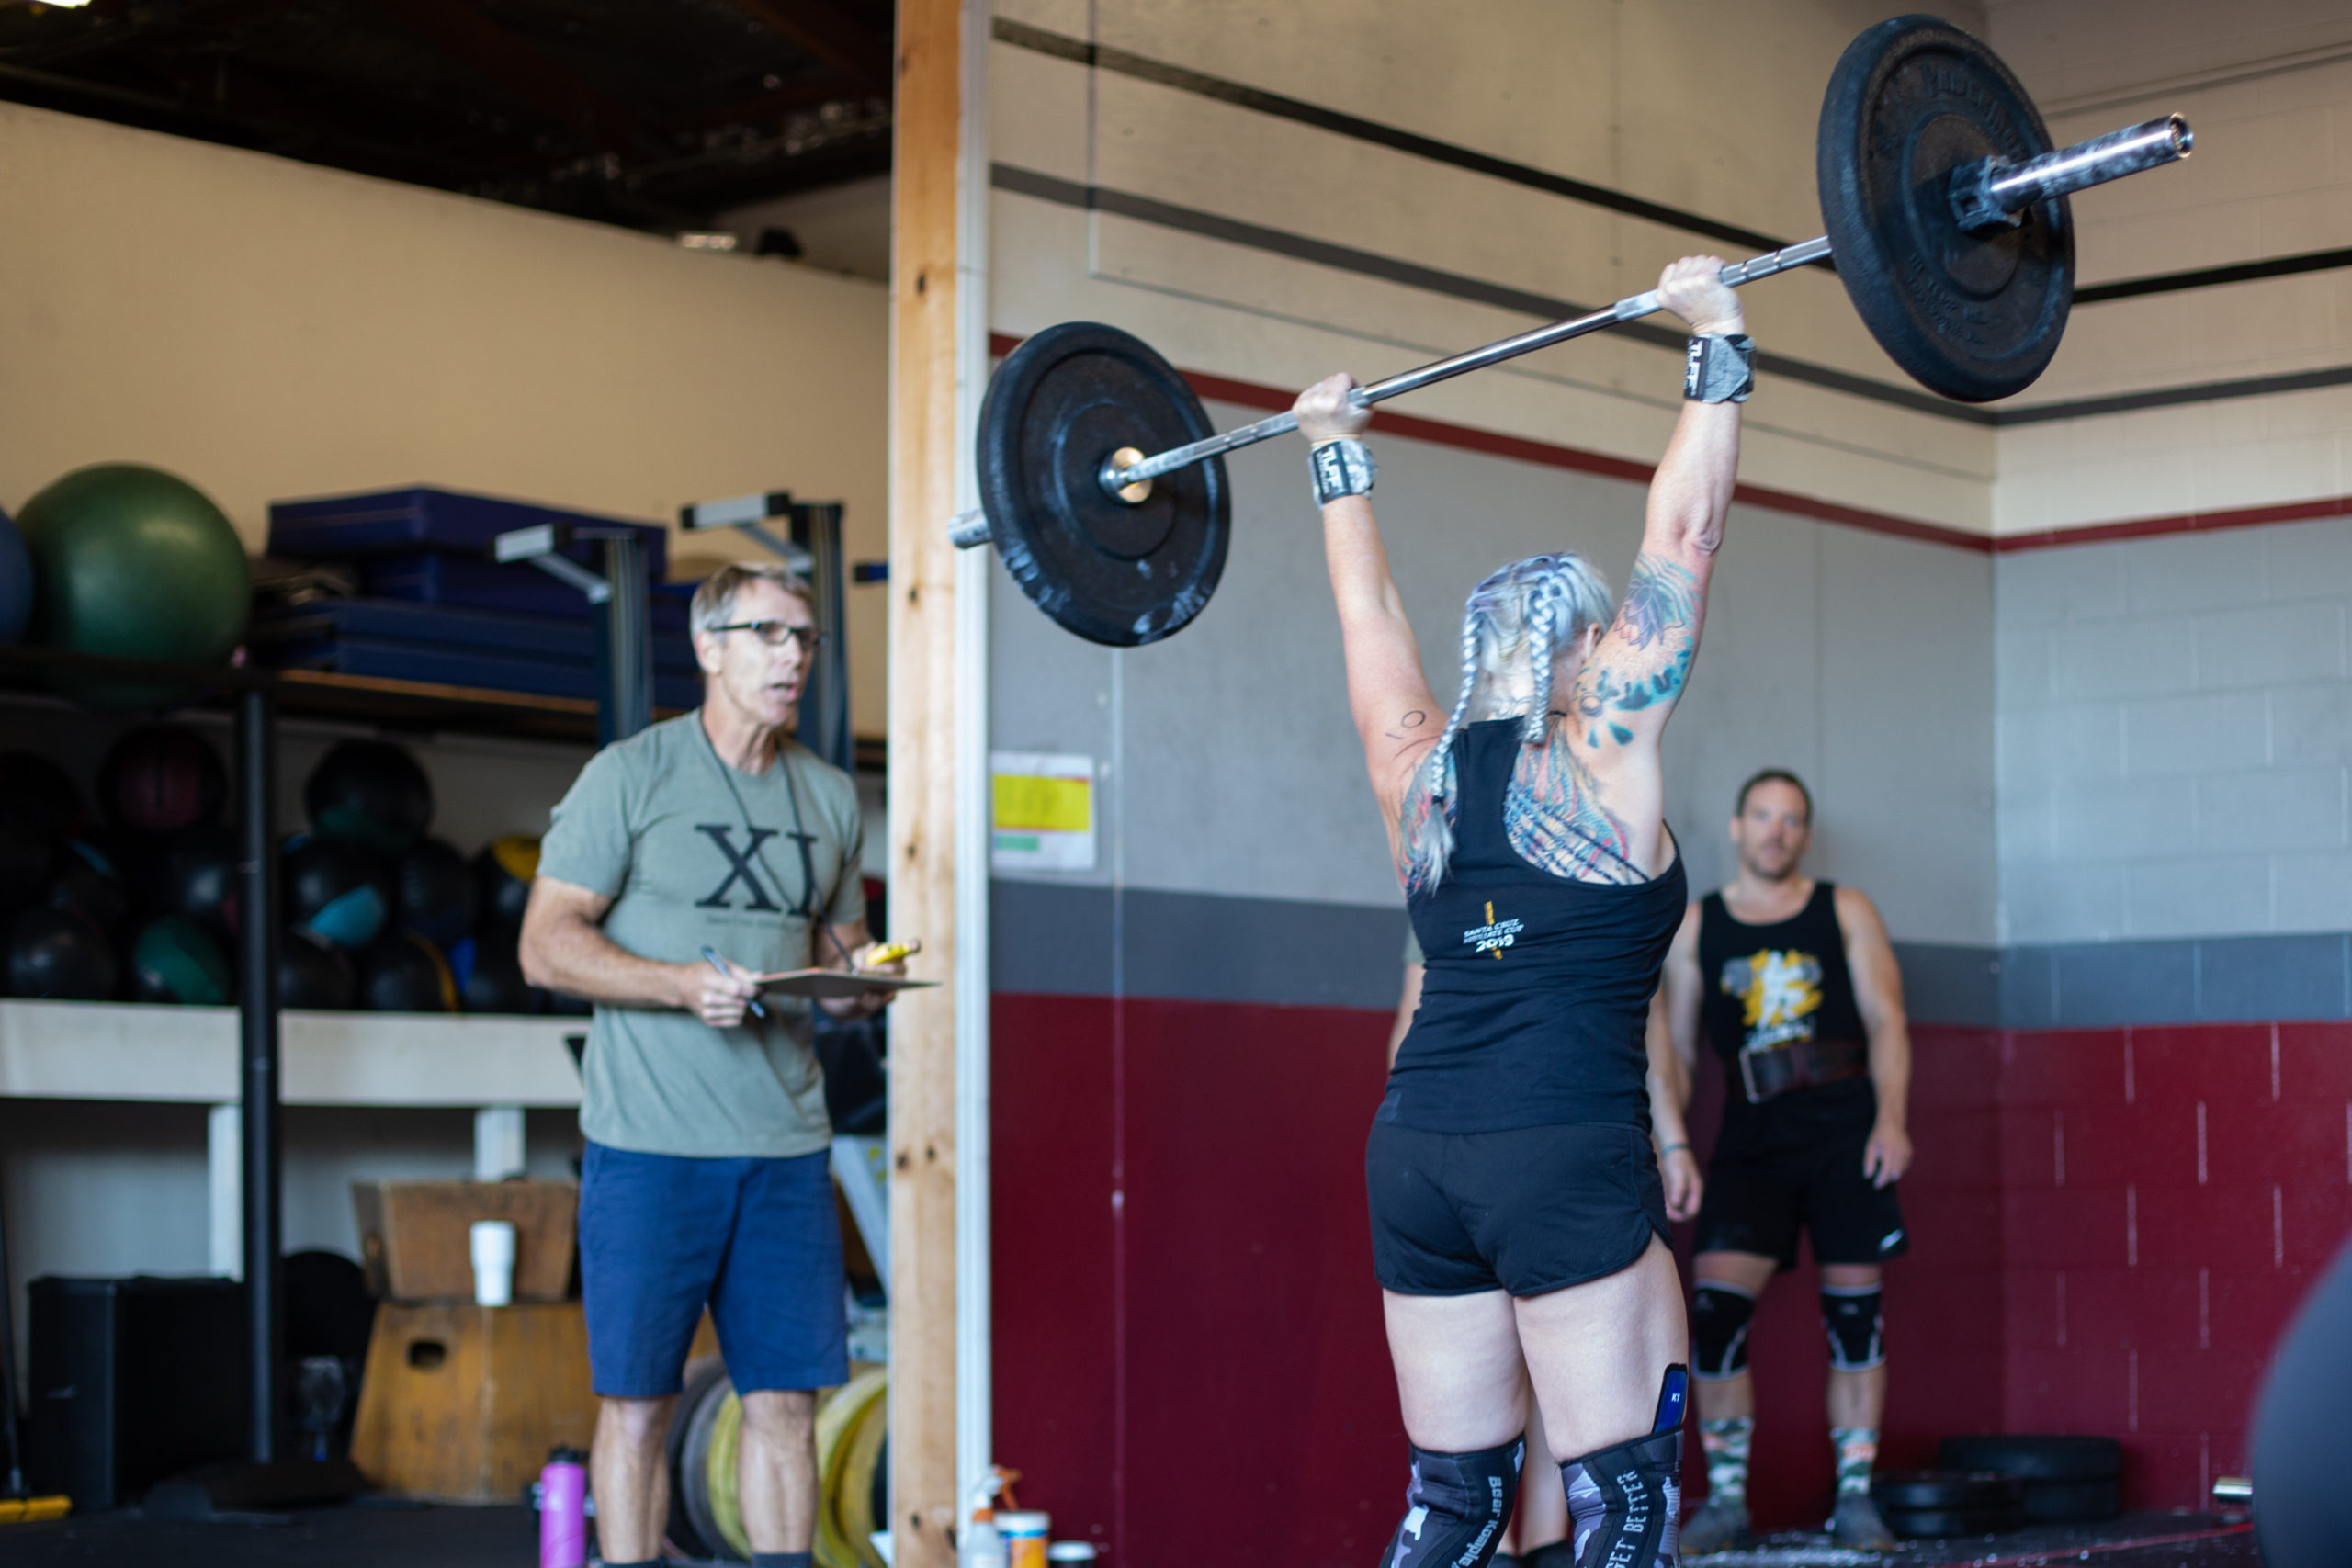 Angie Manson completes an overhead lift.